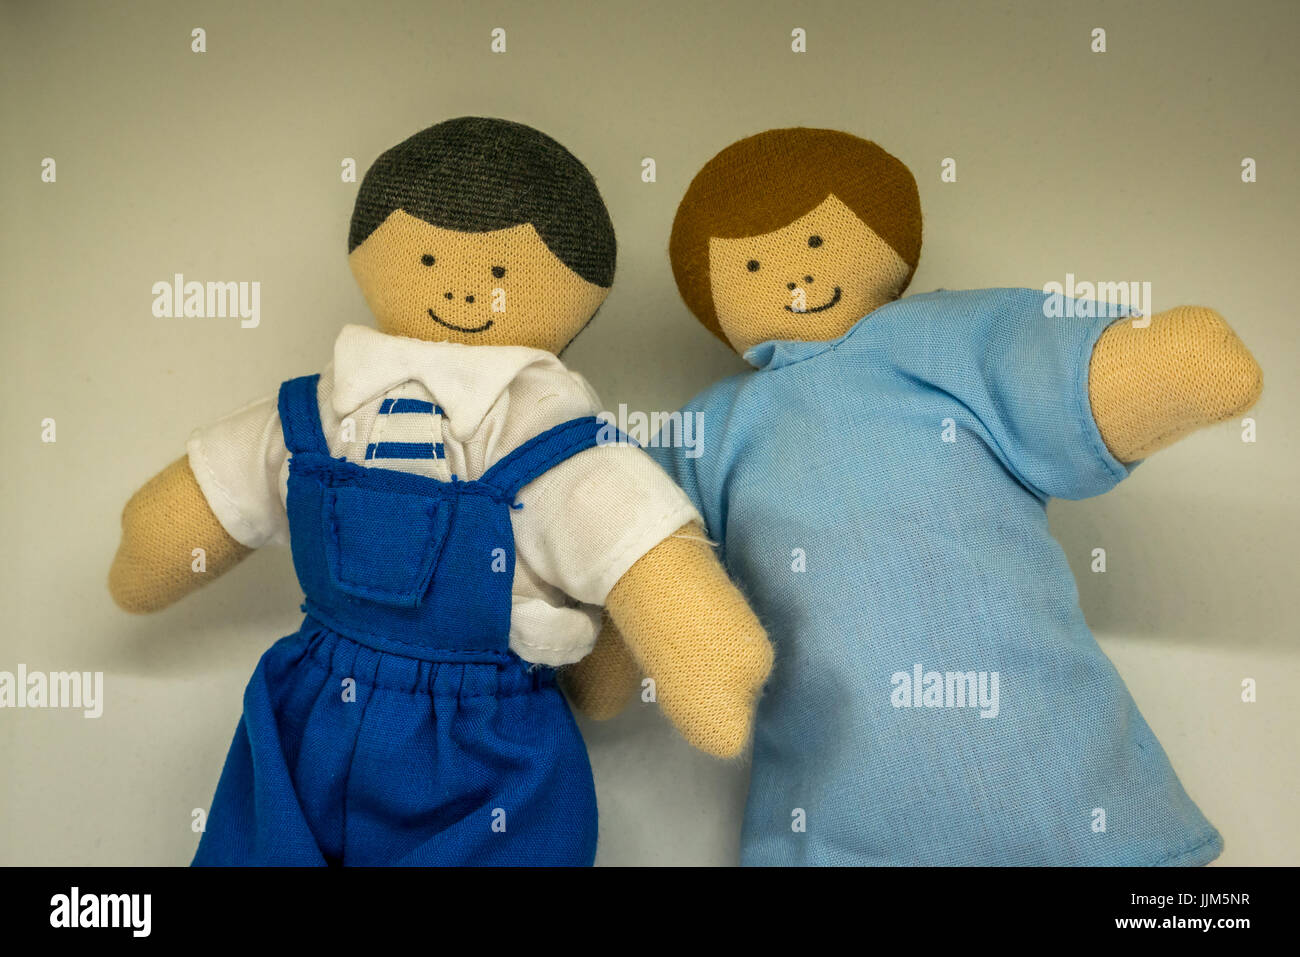 still life of male and female toy dolls against white background to represent parents, couple, family members, relationships, - Stock Image